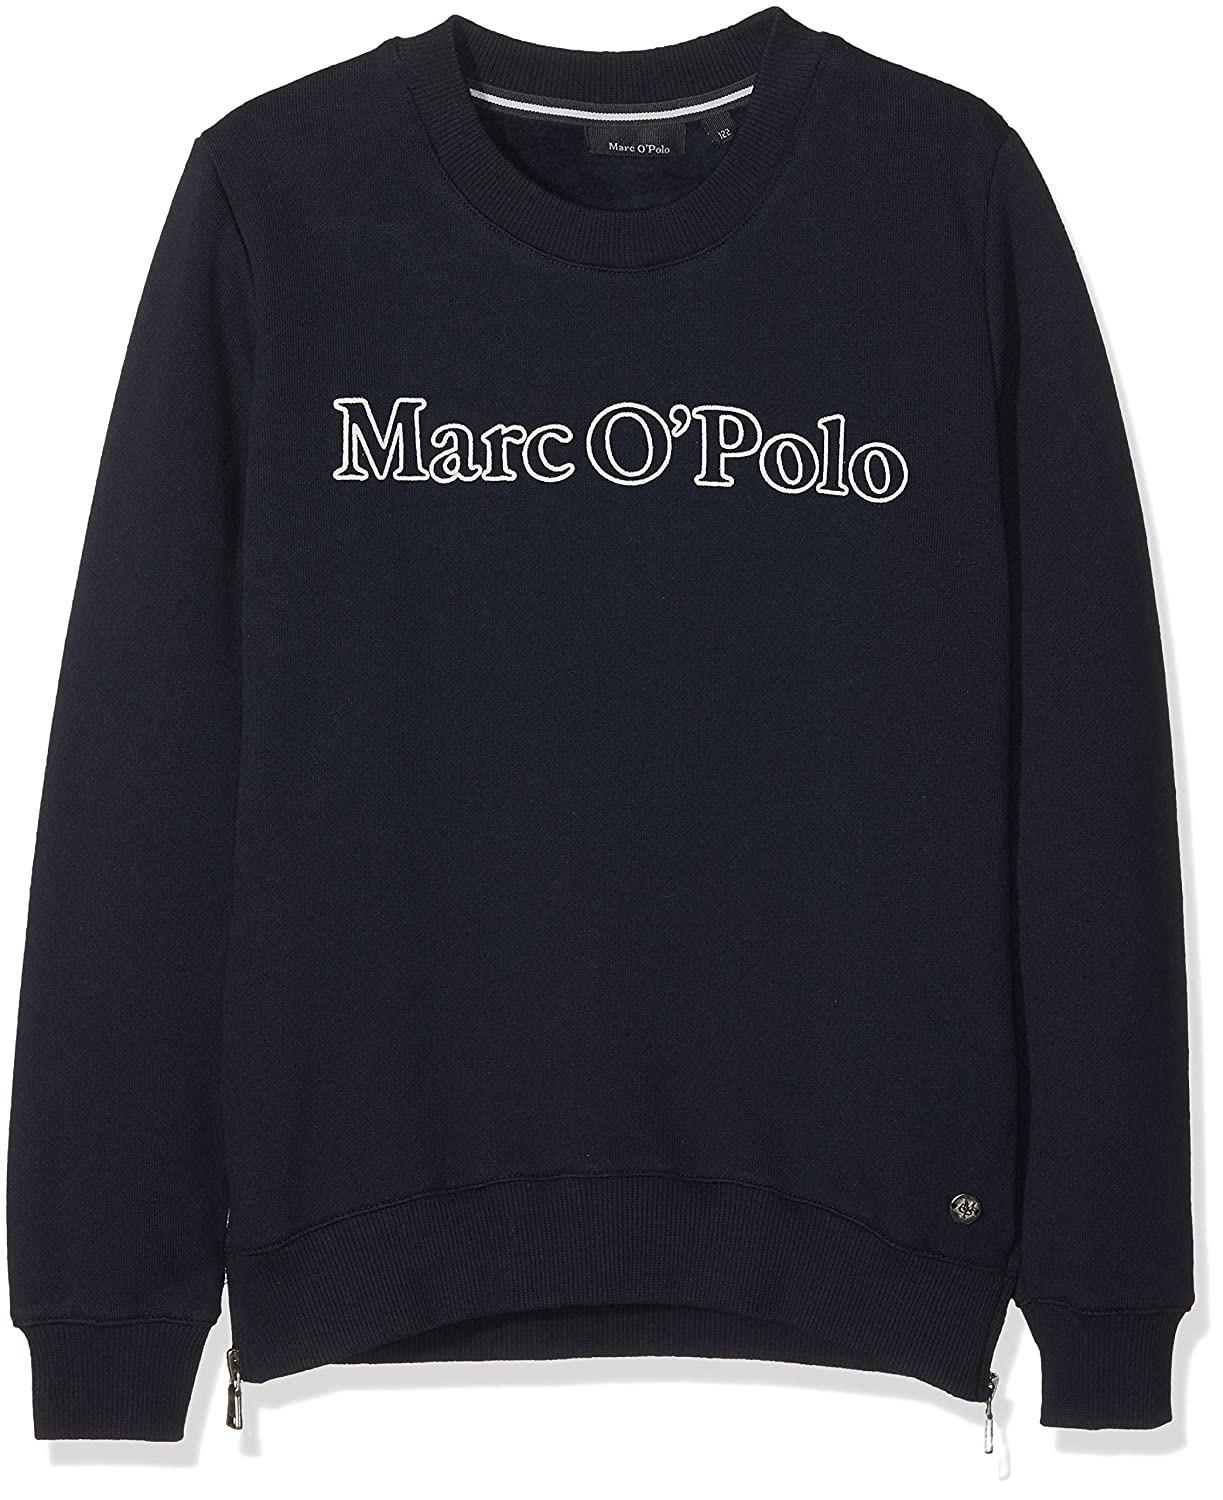 Bleu (Night Sky 3143) 9 ans Marc O' Polo Enfants, Sweat-Shirt Fille